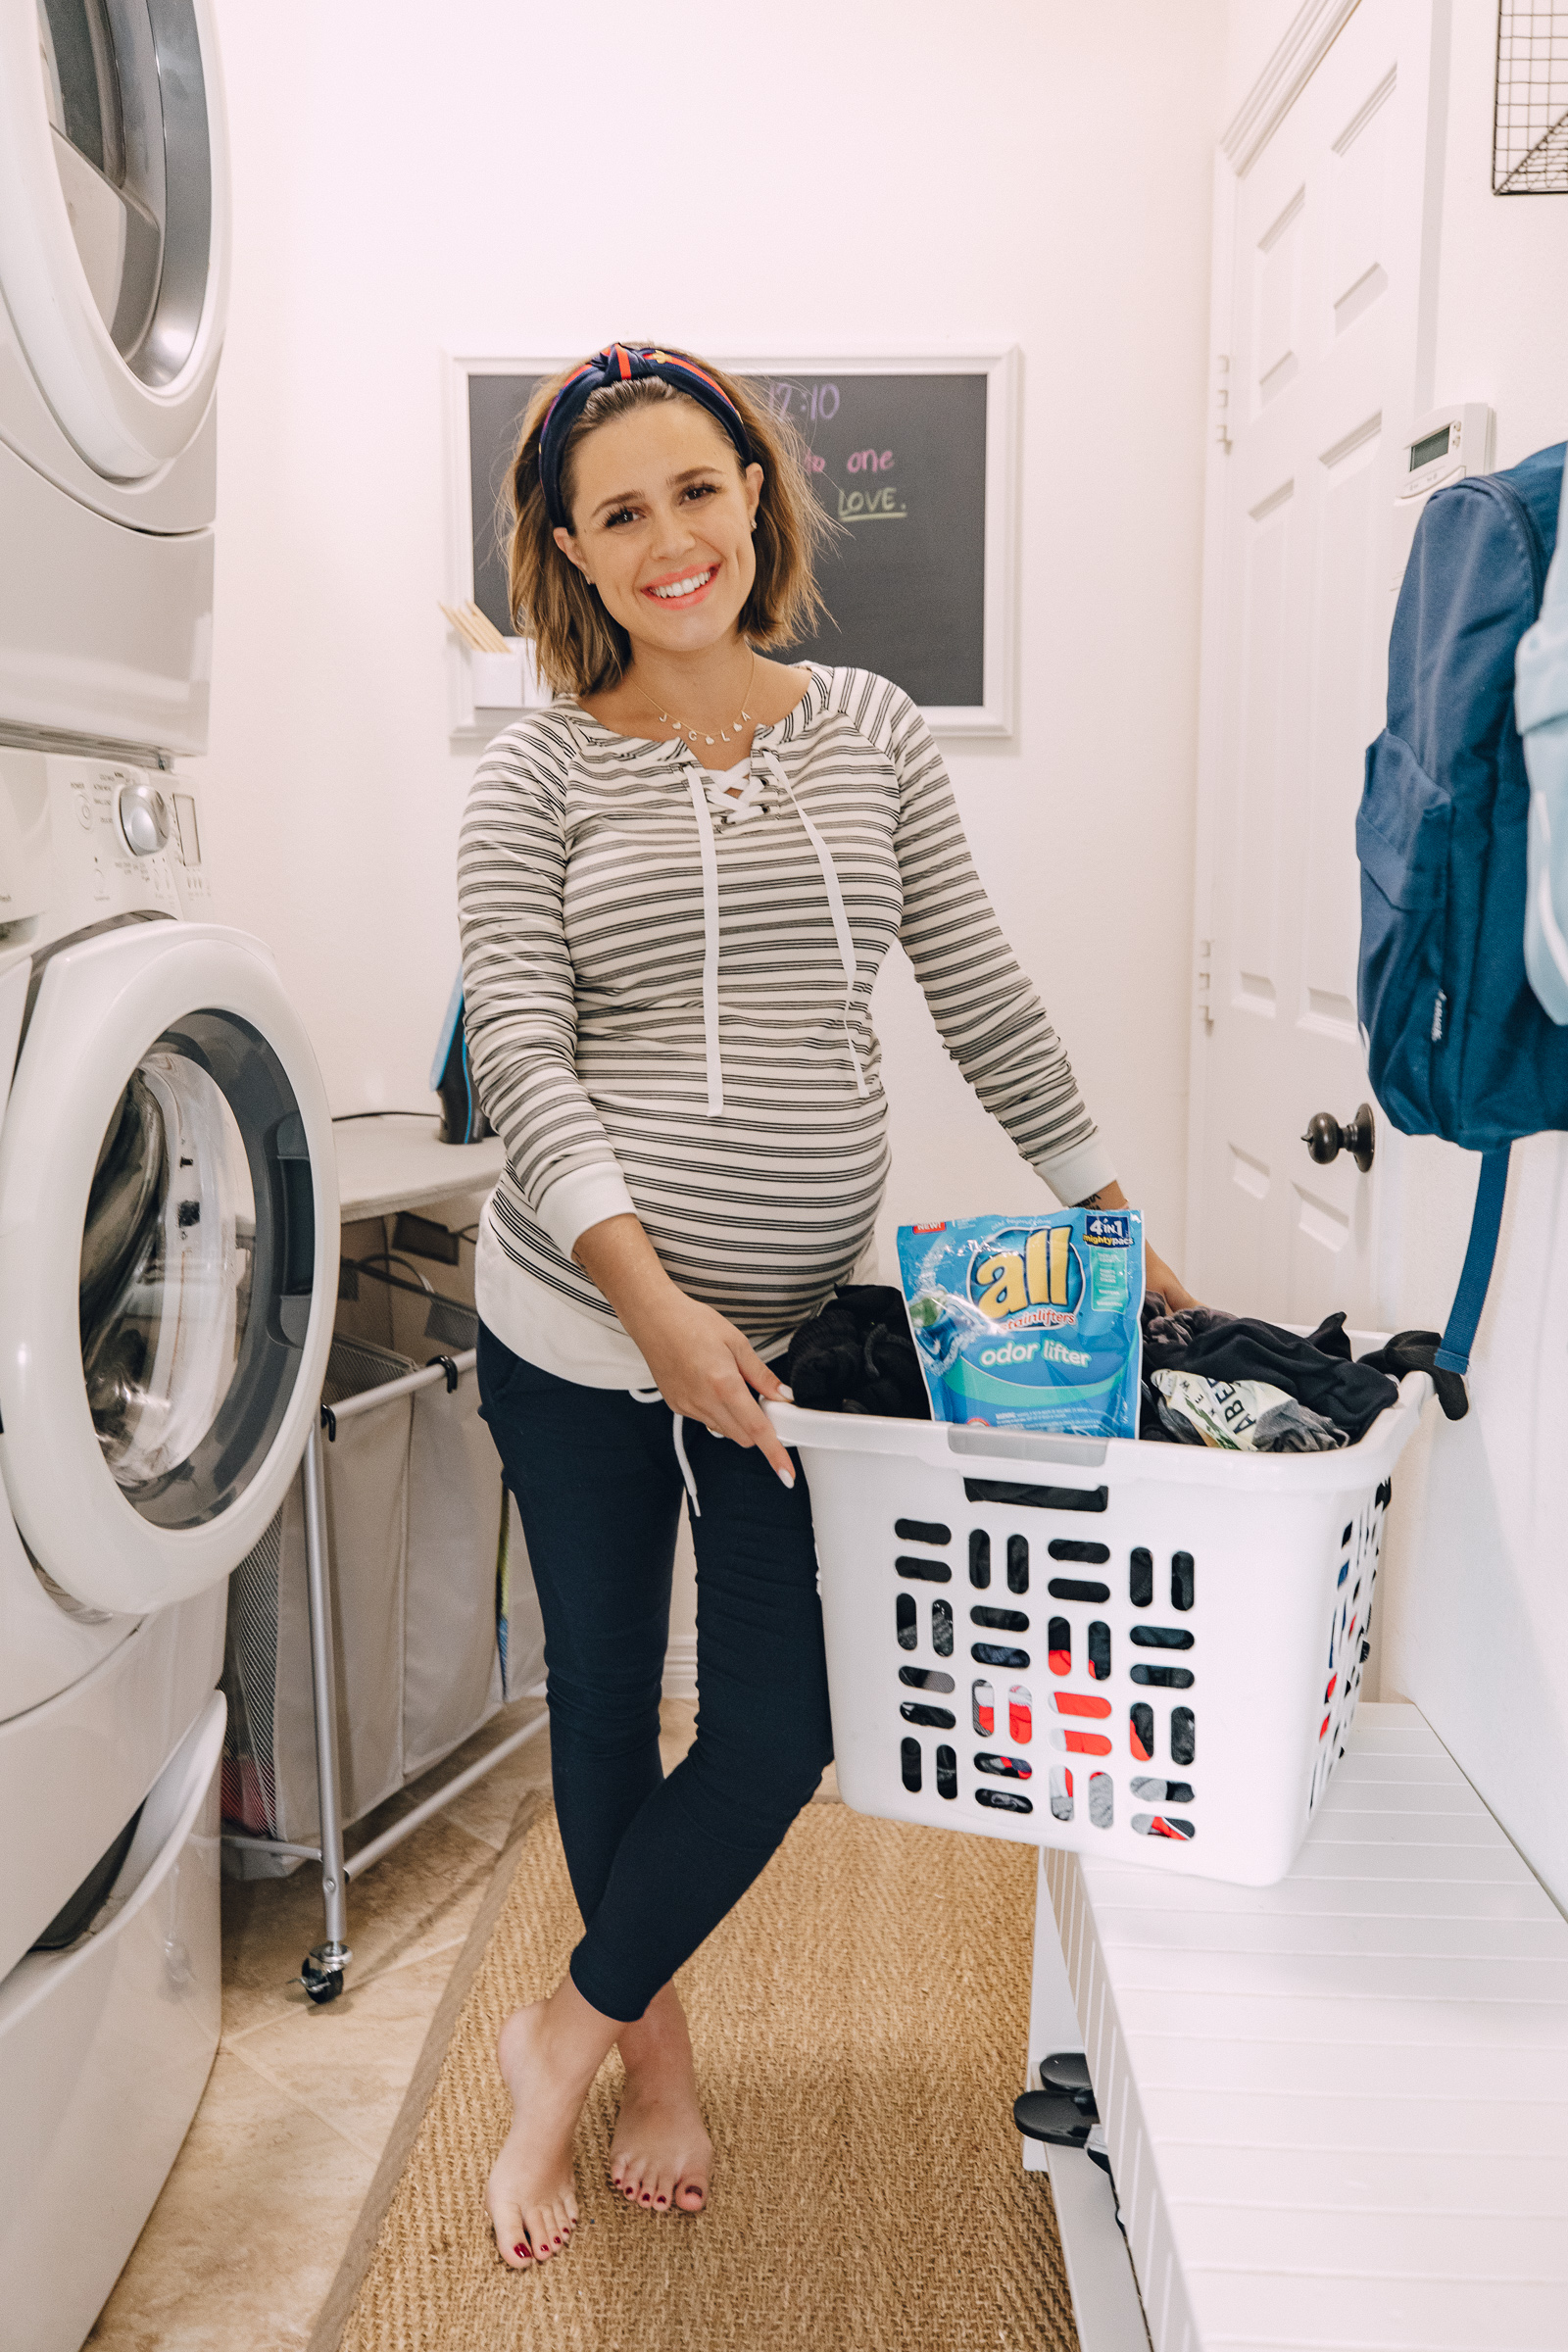 10 Laundry Hacks to help make laundry a bit more easier for you! From using ice cubes to conditioner, these hacks will make laundry fun